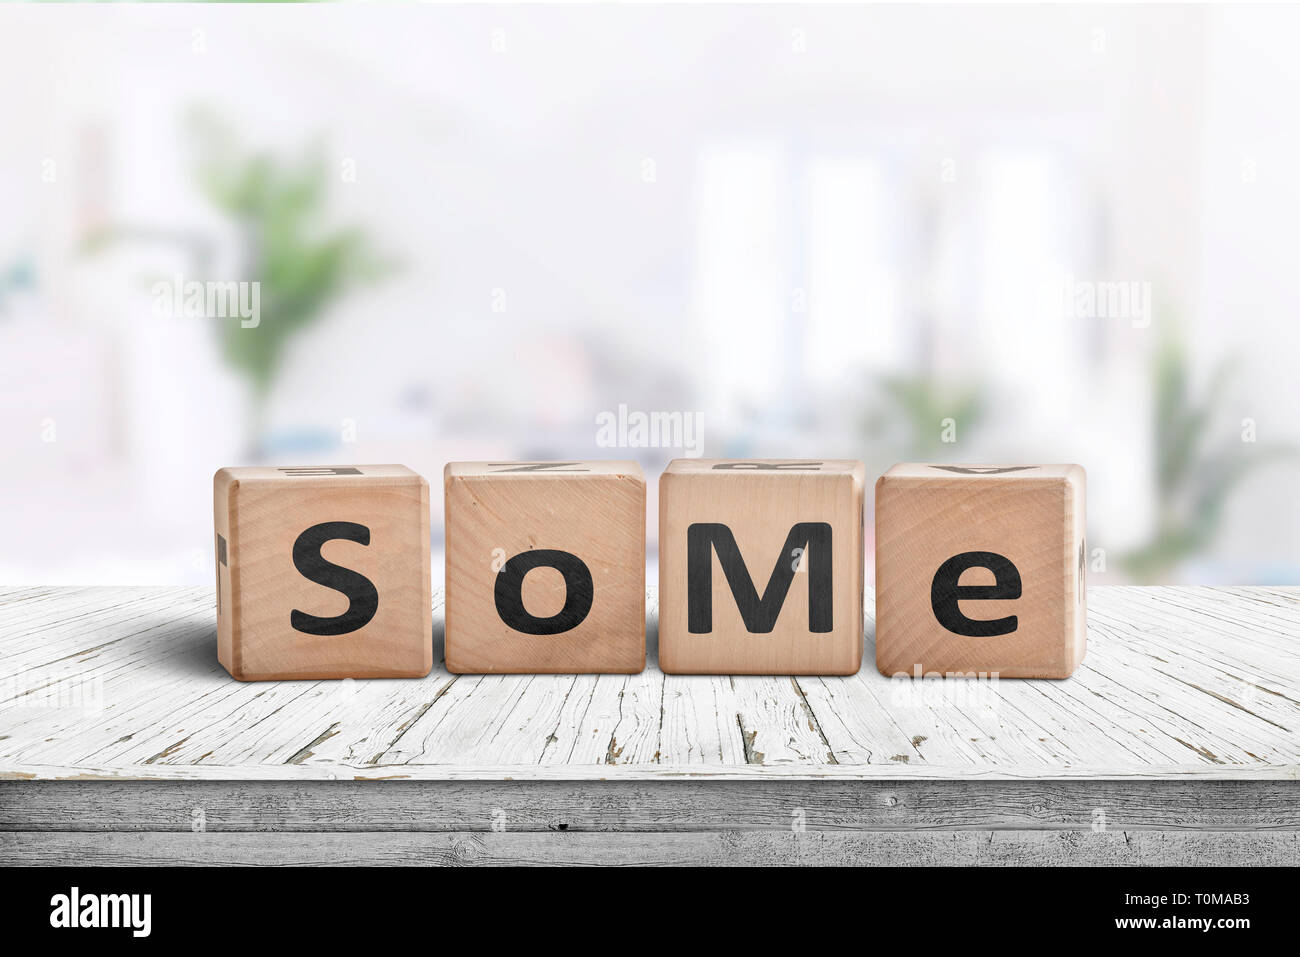 Social media slang word SoMe sign on a wooden table in a ...